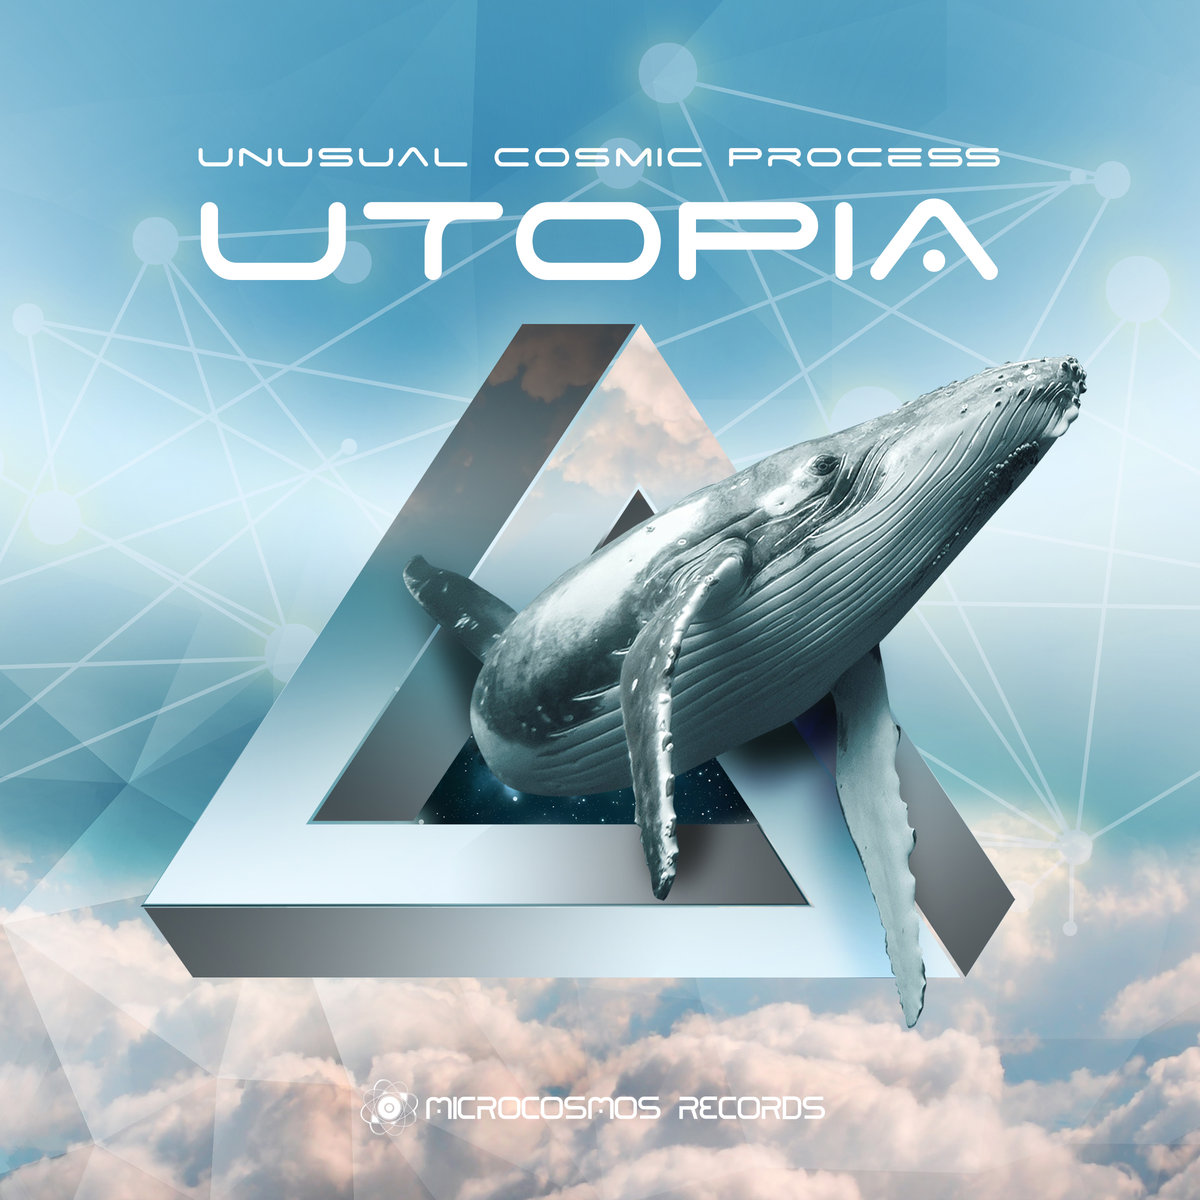 Unusual Cosmic Process - Octospace @ 'Utopia' album (ambient, chill-out)